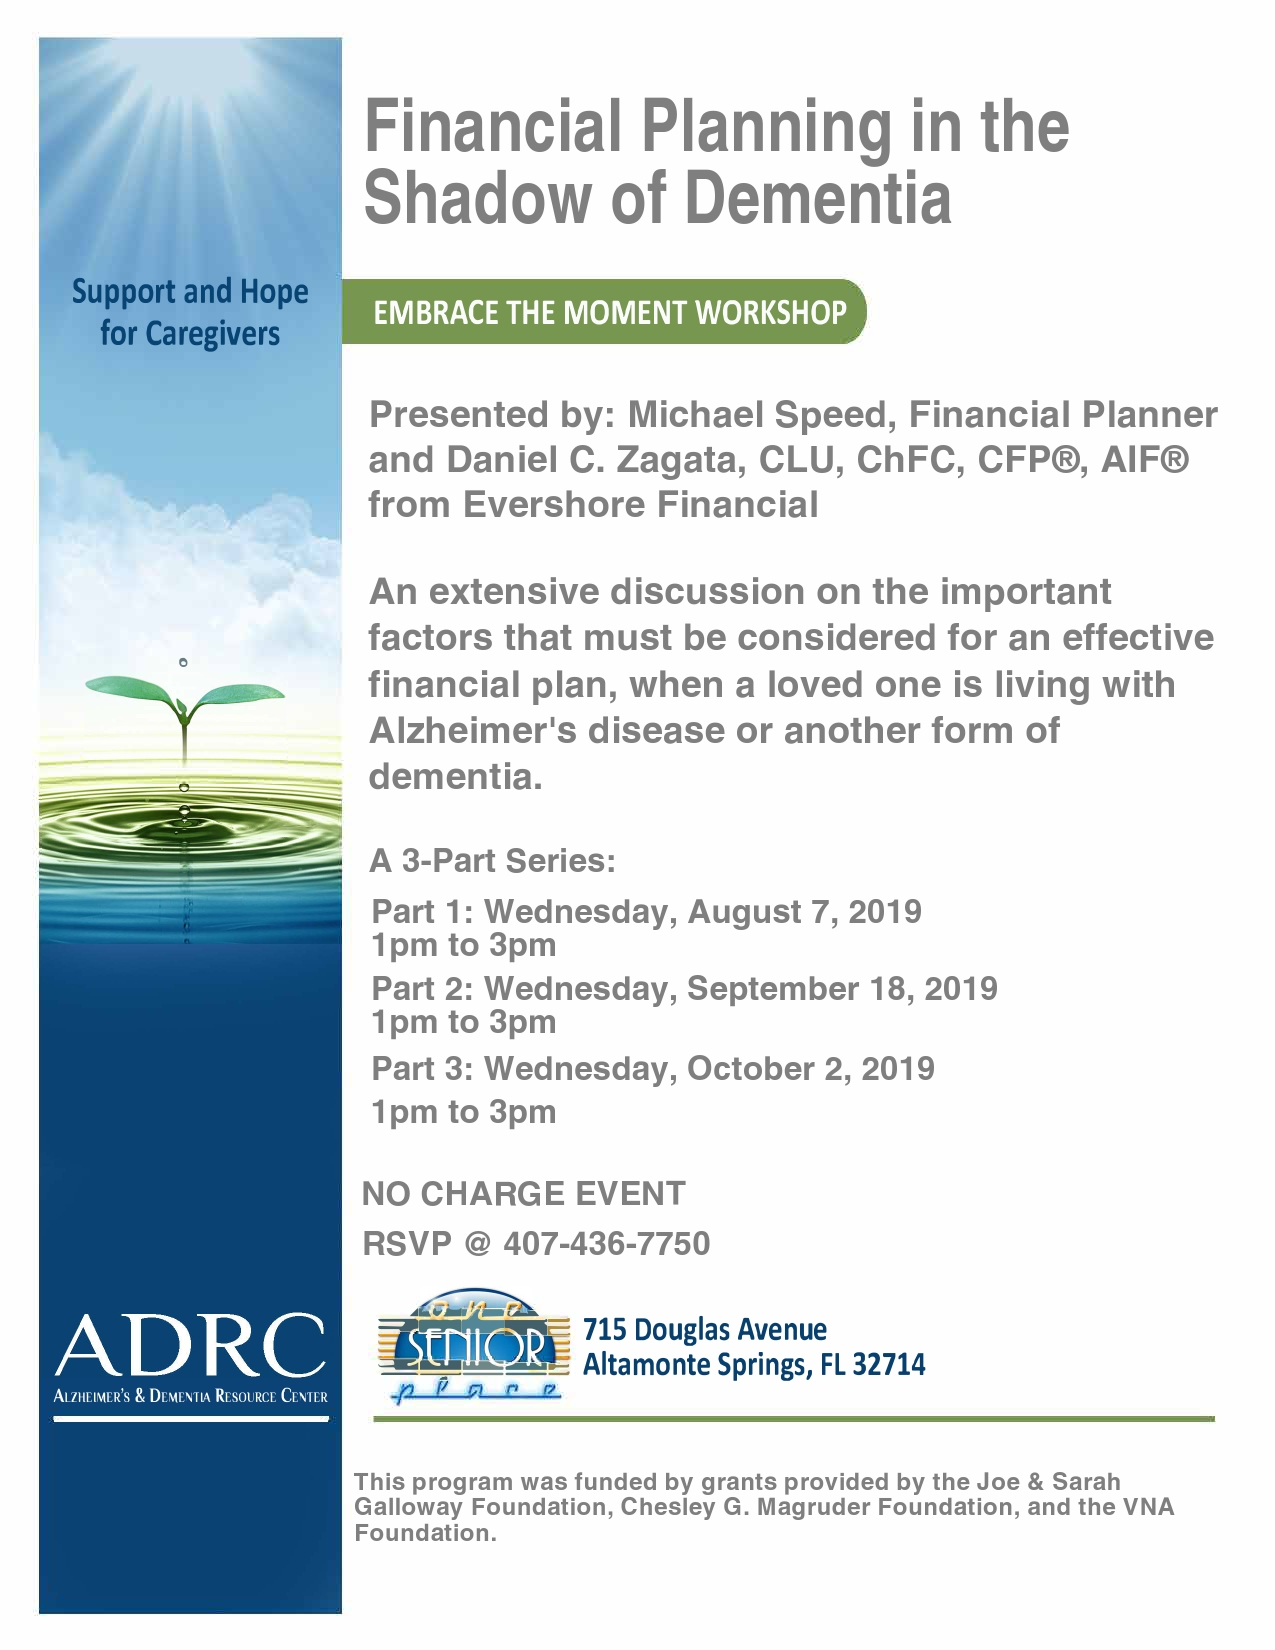 Part 2 - Financial Planning in the Shadow of Dementia